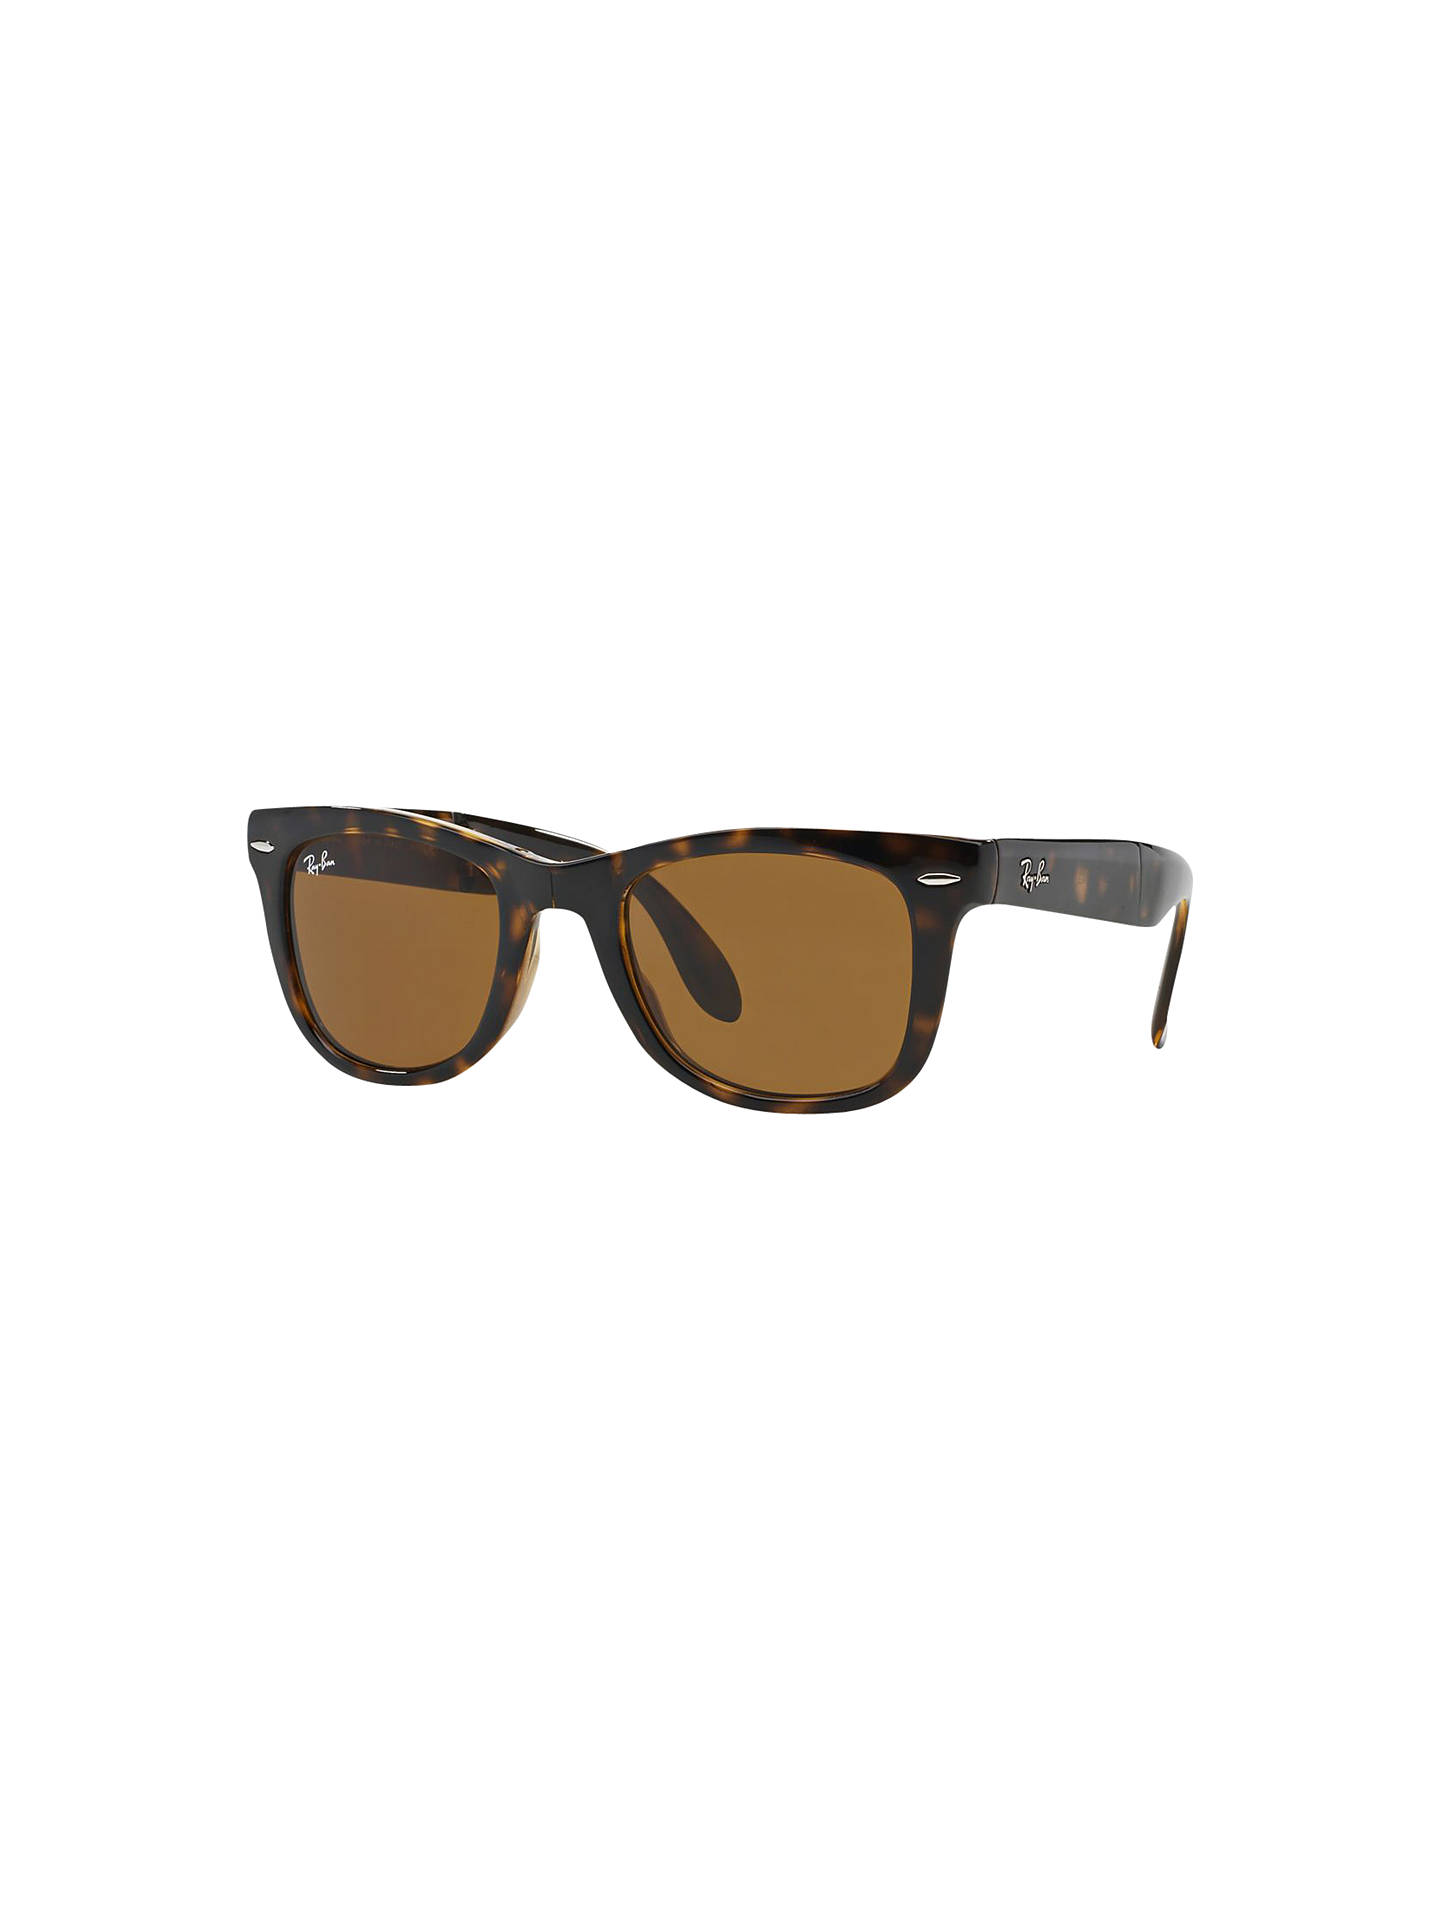 1df20eb4c1 Ray-Ban RB4105 Men s Folding Wayfarer Sunglasses at John Lewis ...